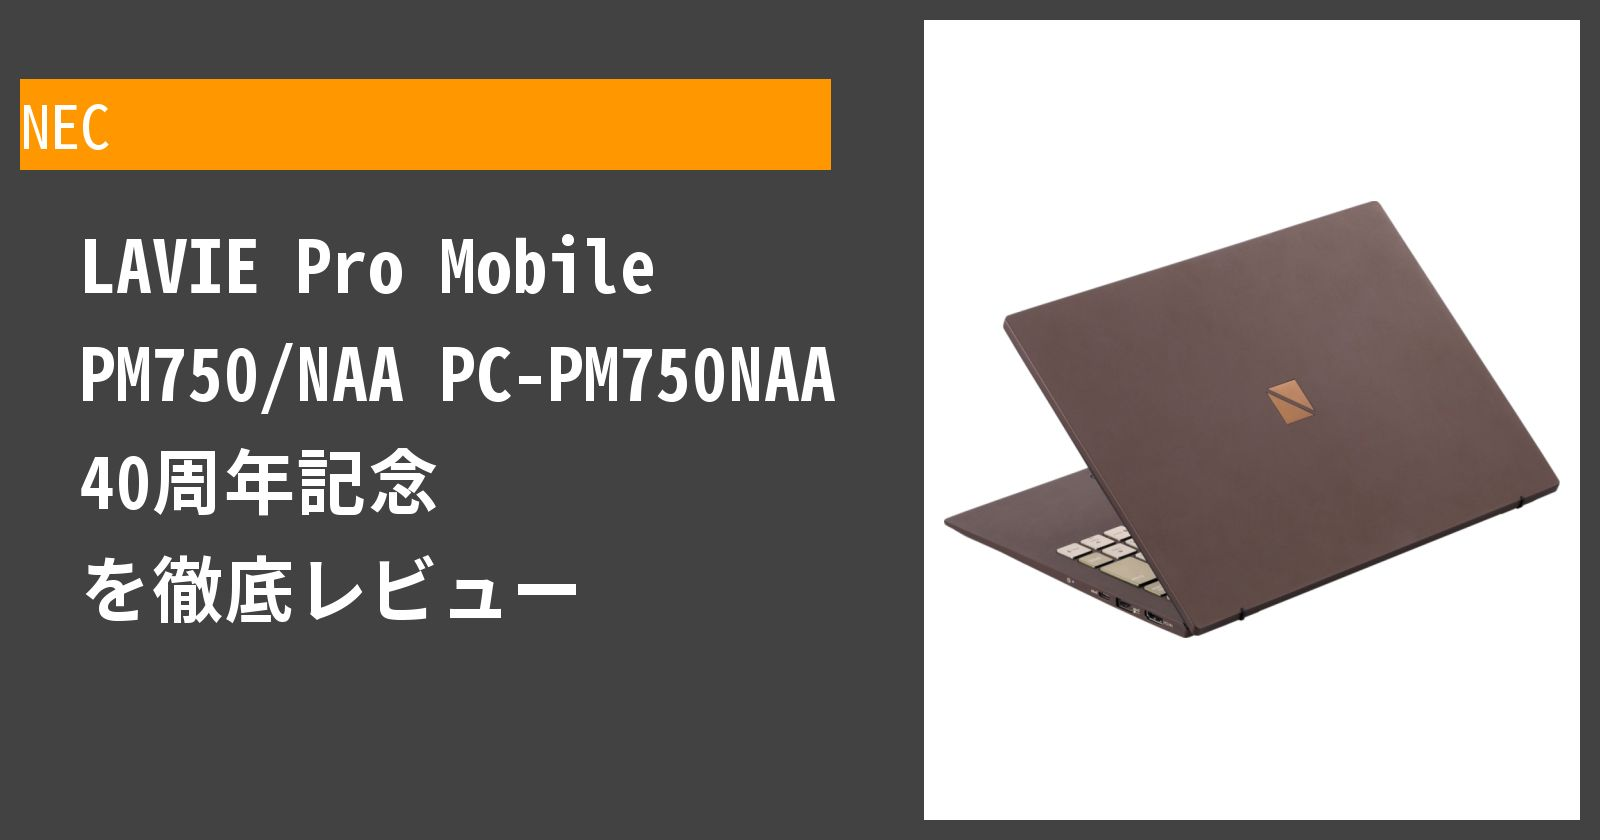 LAVIE Pro Mobile PM750/NAA PC-PM750NAA 40周年記念を徹底評価